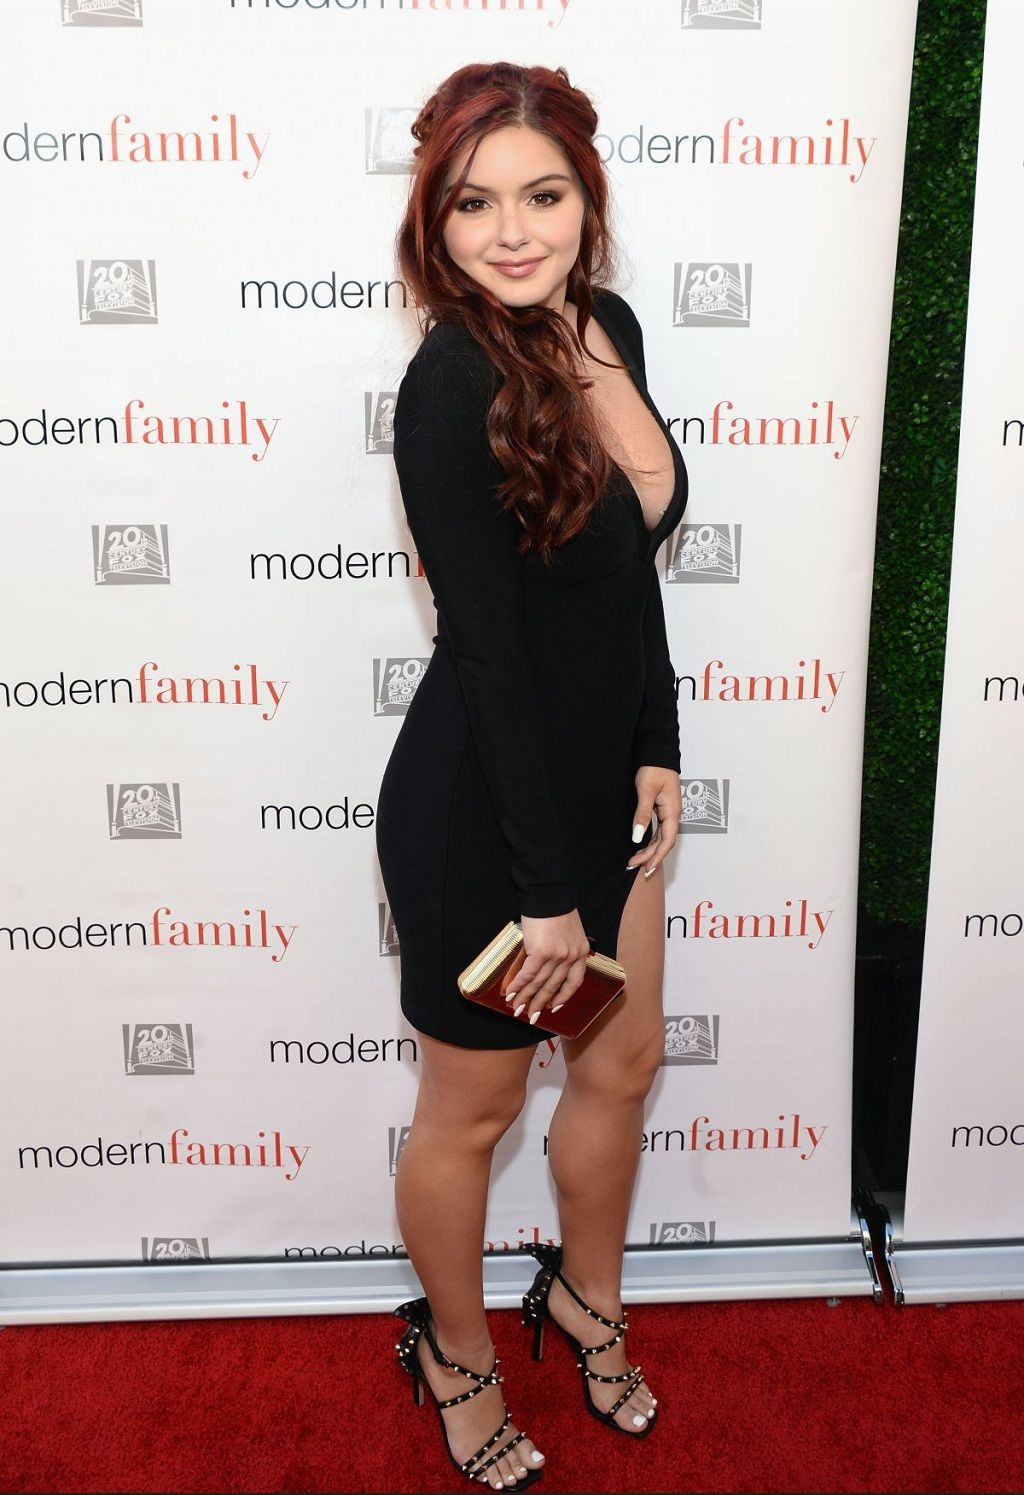 Ariel Winter Latest Cleavage Photos At Modern Family Emmy Event 2016 1024 1495 Famous